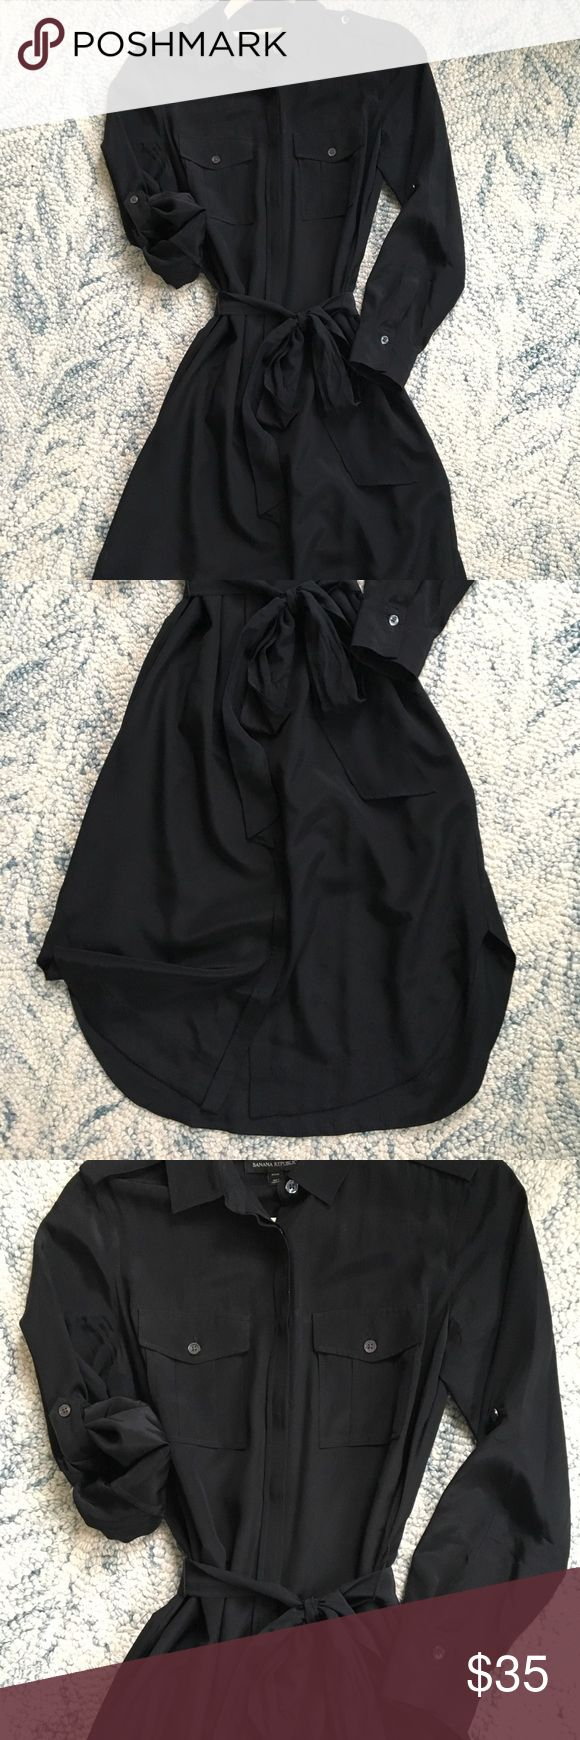 Banana Republic black silk shirt dress Banana Republic black silk shirt dress with removable belt. Sleeves can stay long or roll up with a short sleeve button. Great condition, dress never goes out of style! Banana Republic Dresses Midi